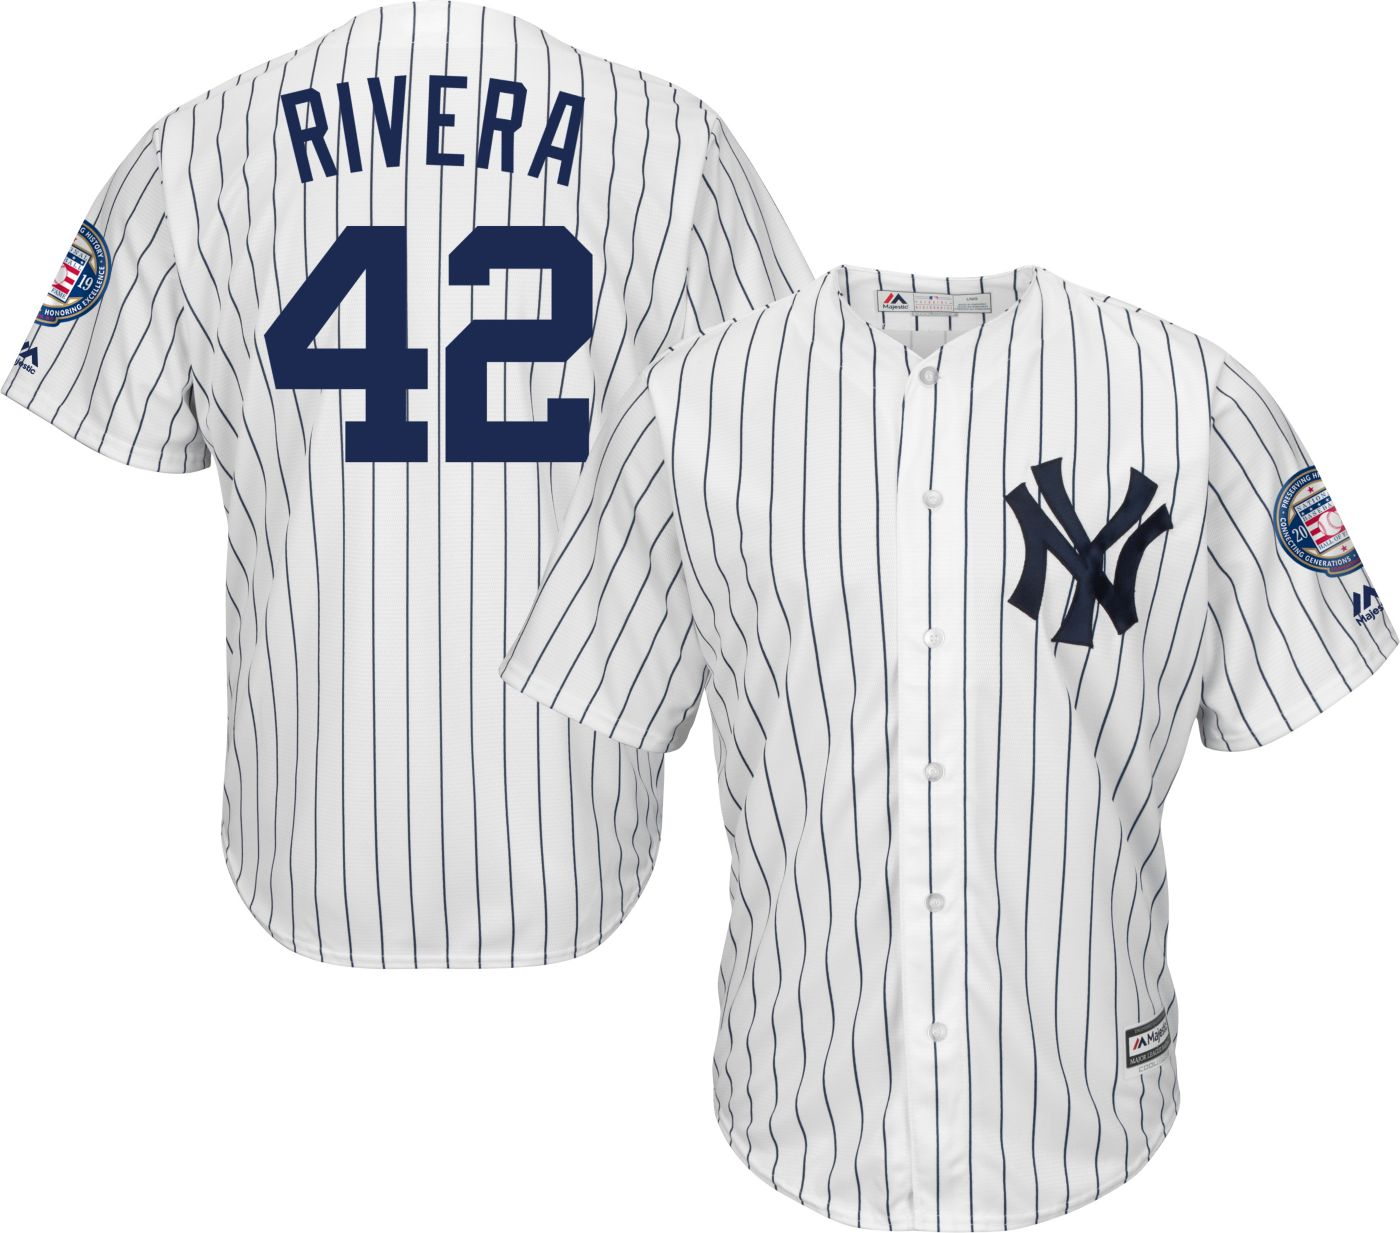 Majestic Men's Replica New York Yankees Mariano Rivera #42 Cool Base Home White Jersey w/ 2019 Hall-of-Fame Patch